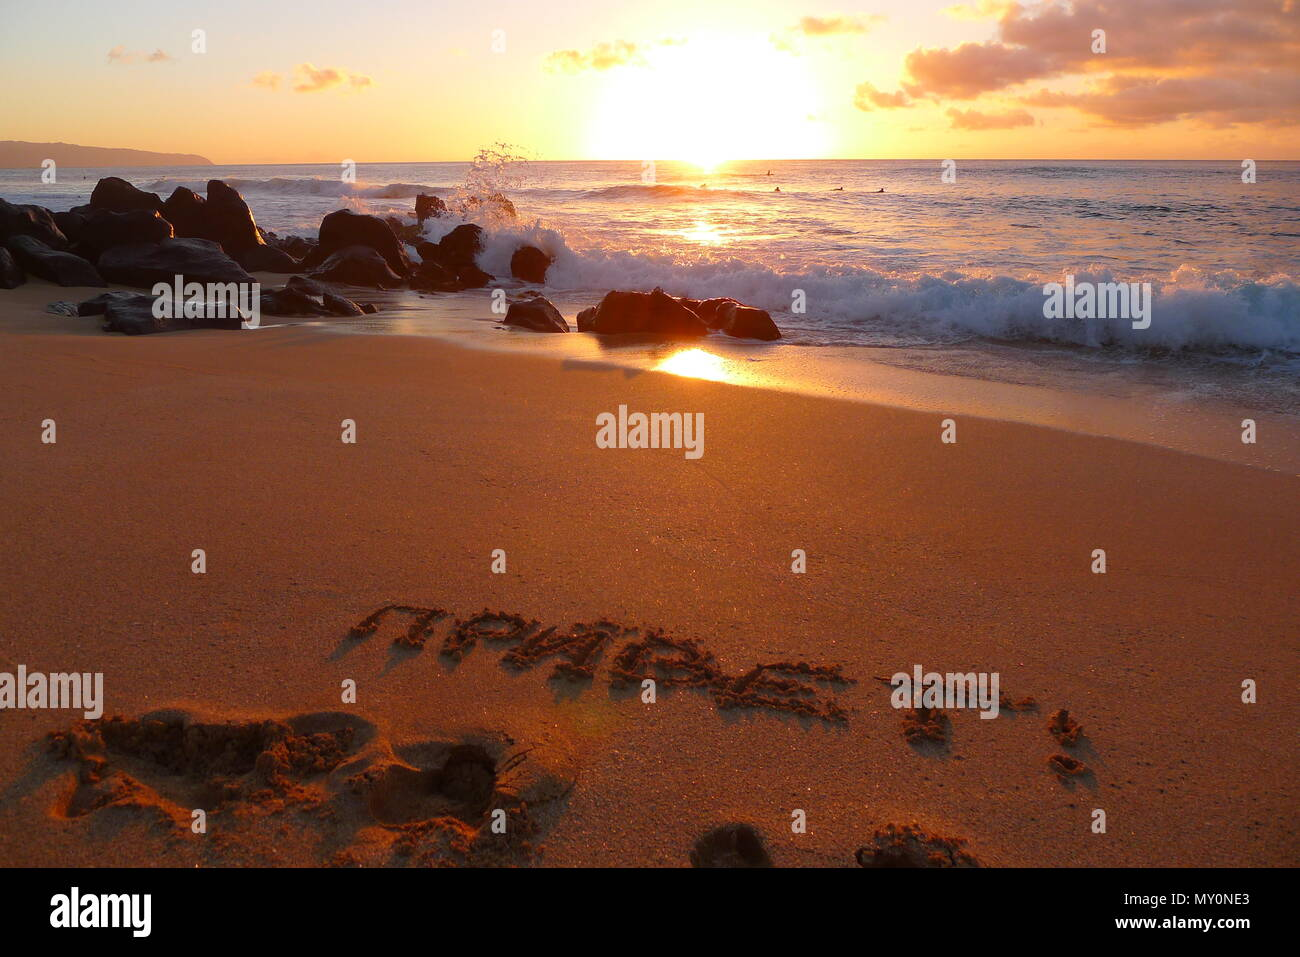 Beach At Hawaii With Greeting In Russian Letters In The Sand Stock